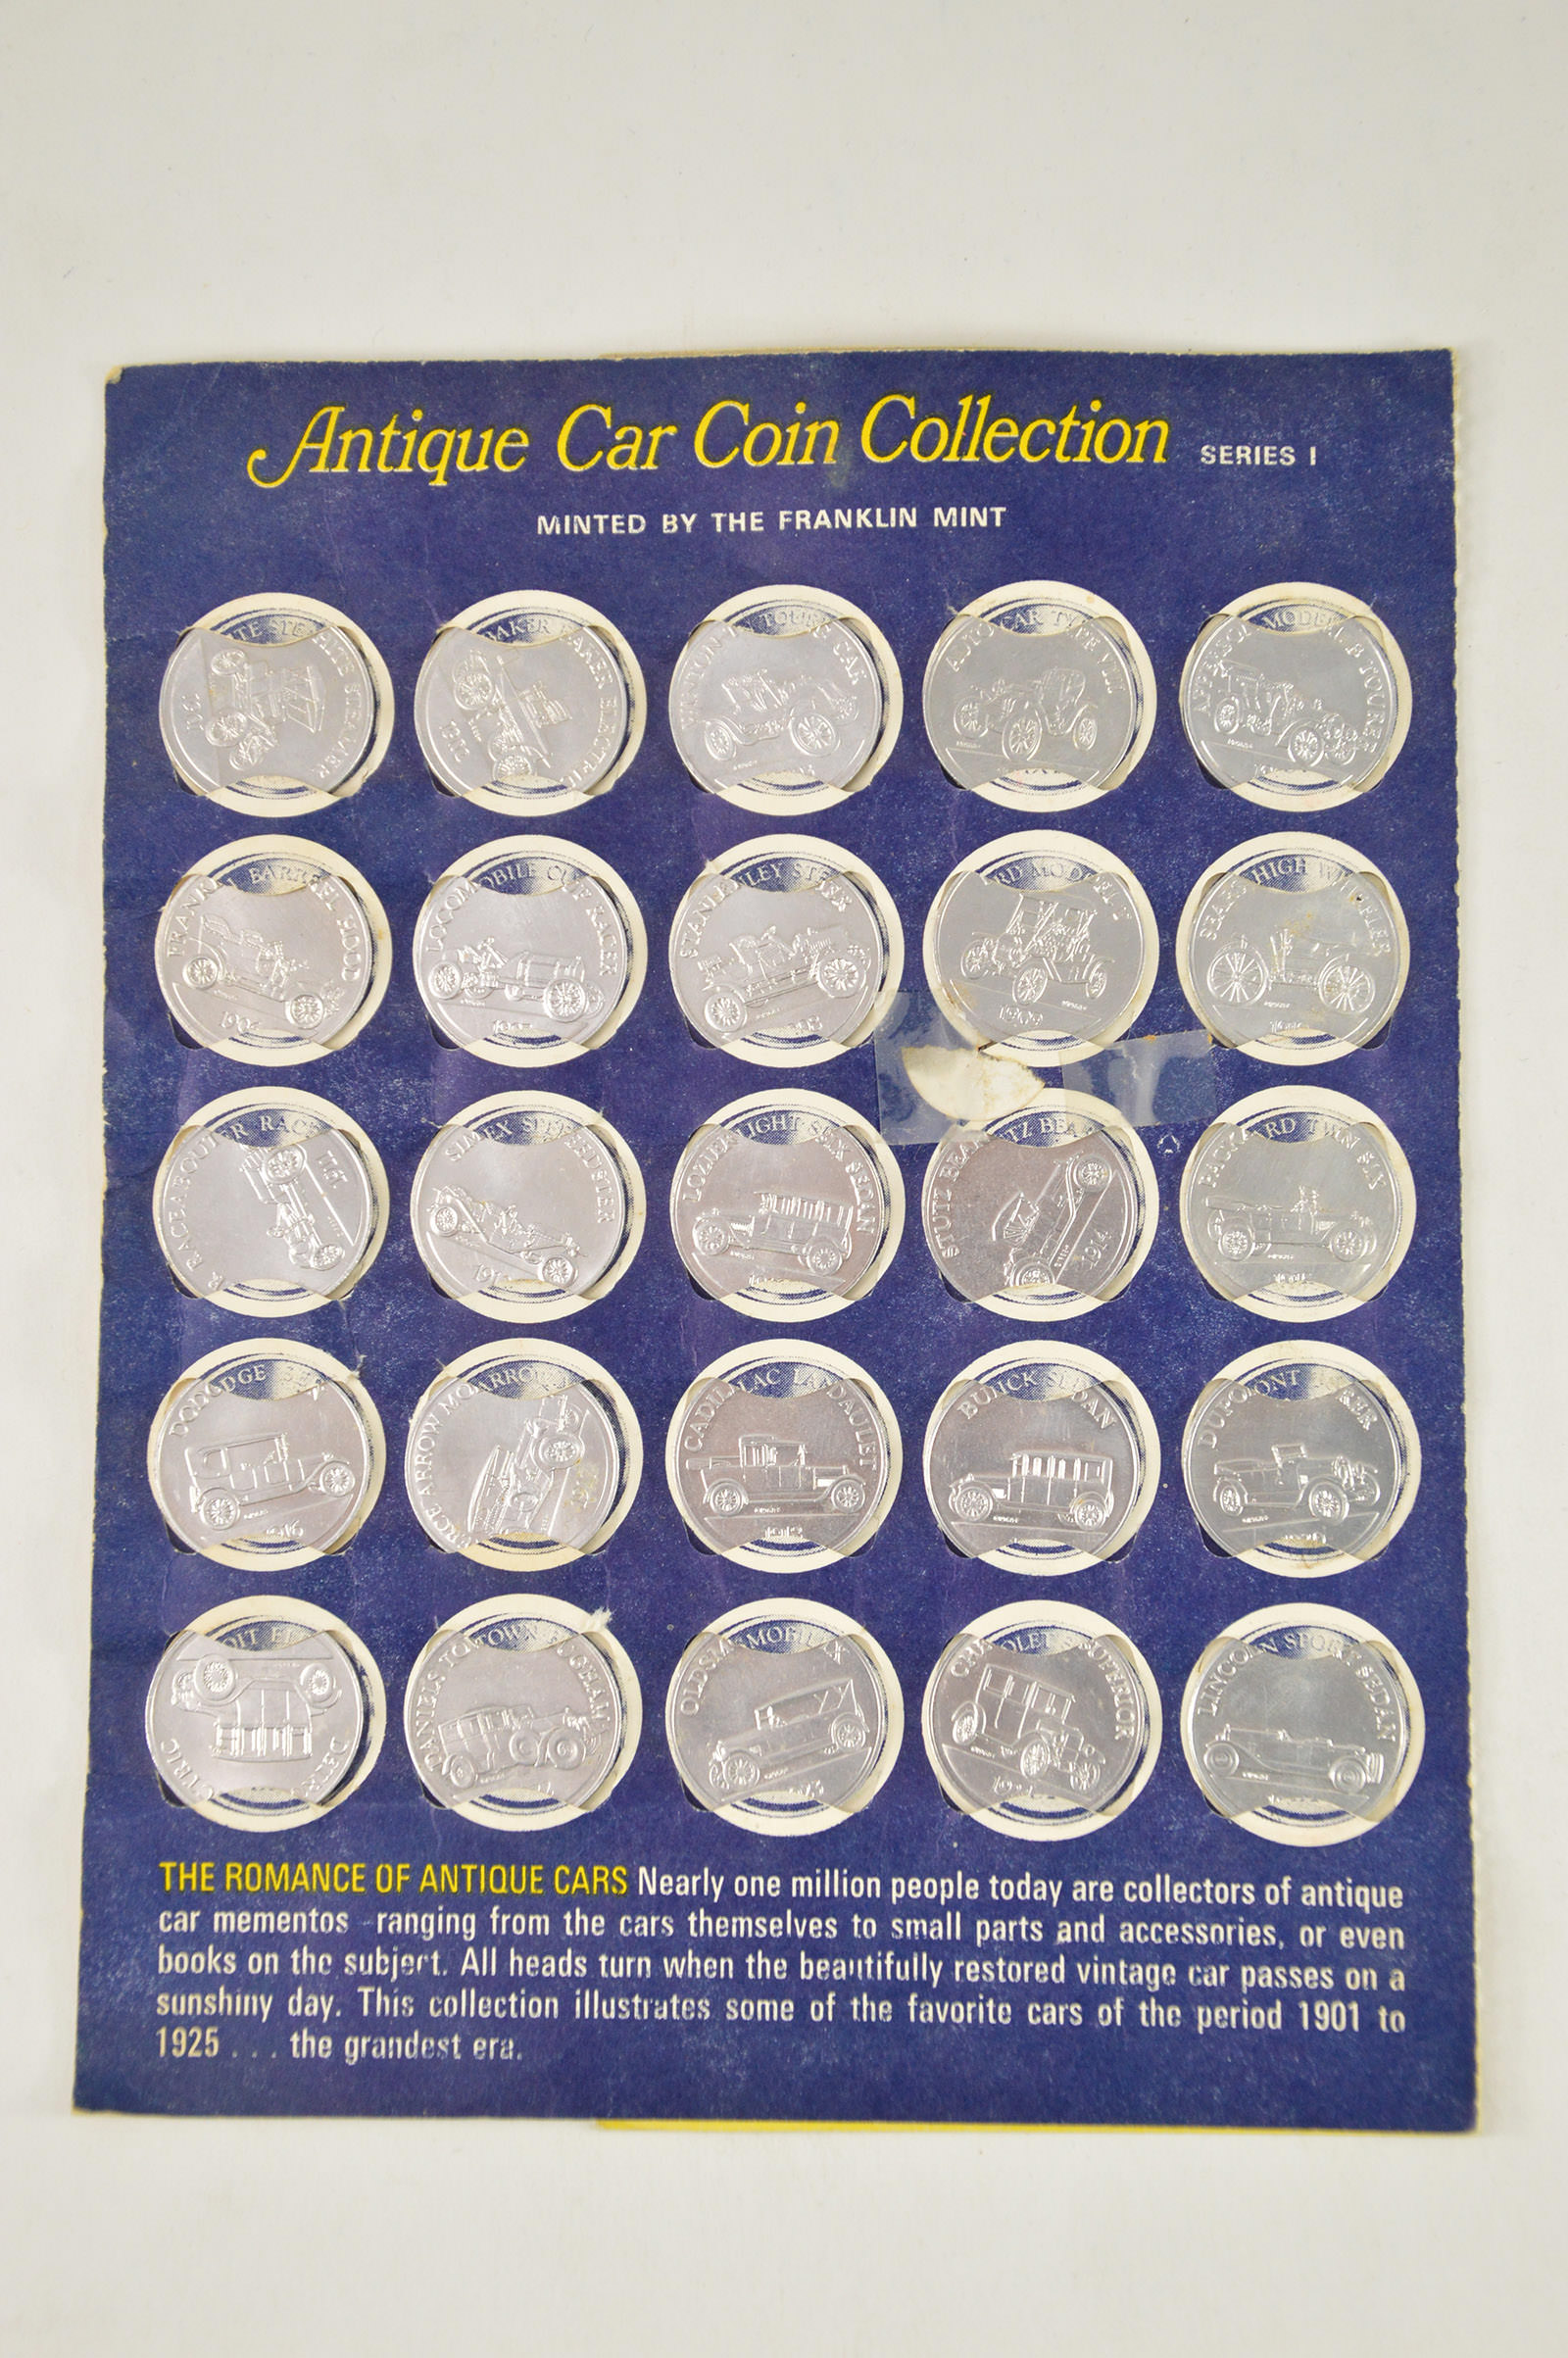 Image 1 Of 2 Historic Coin Collection Antique Car Series